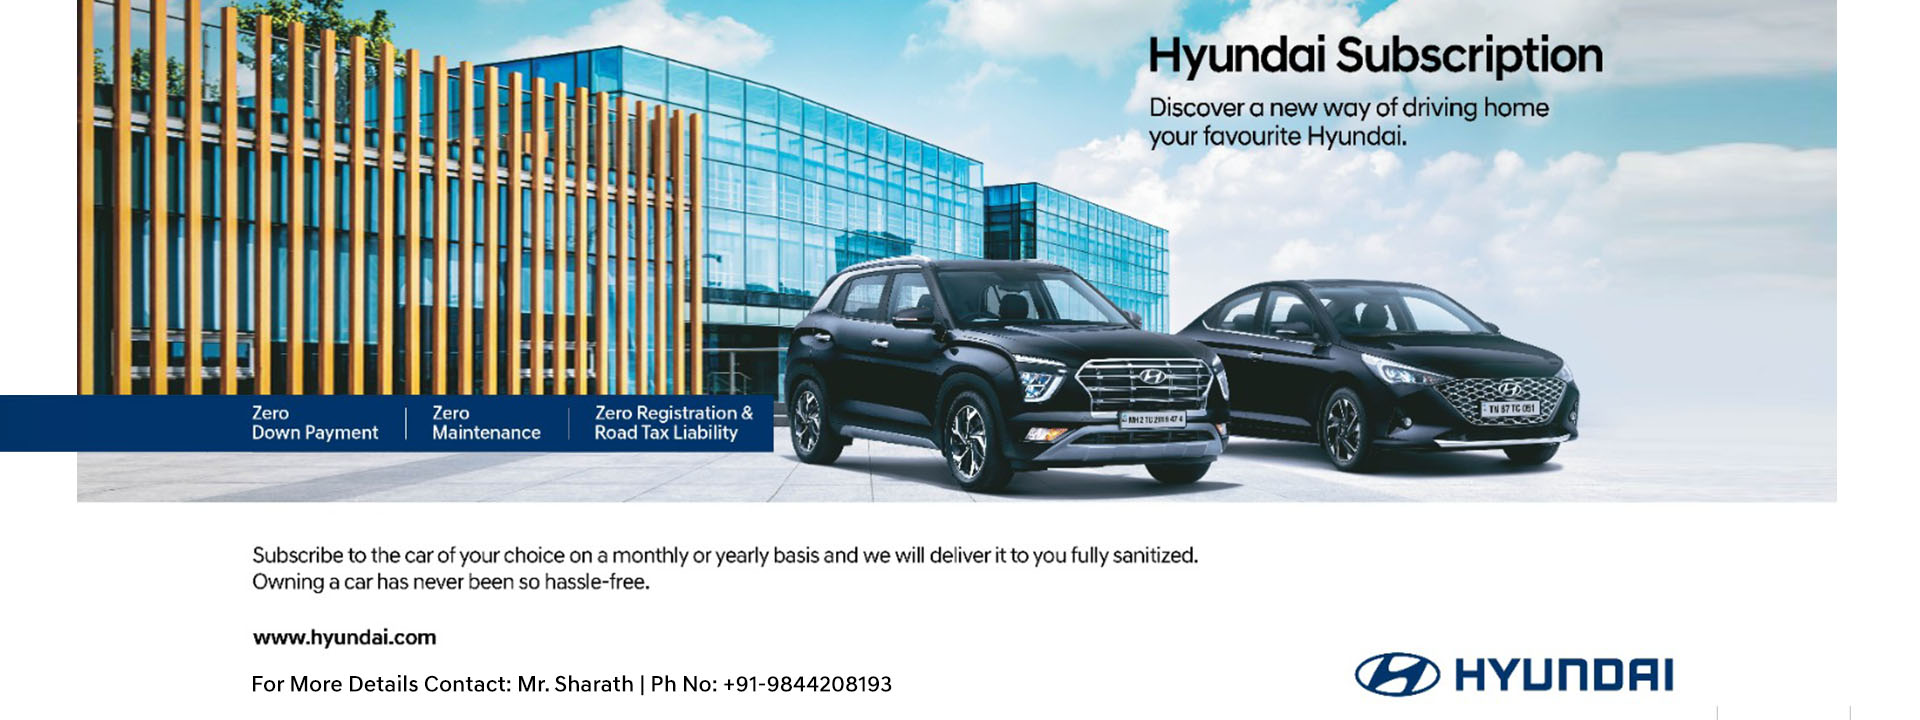 hyundai-subscription